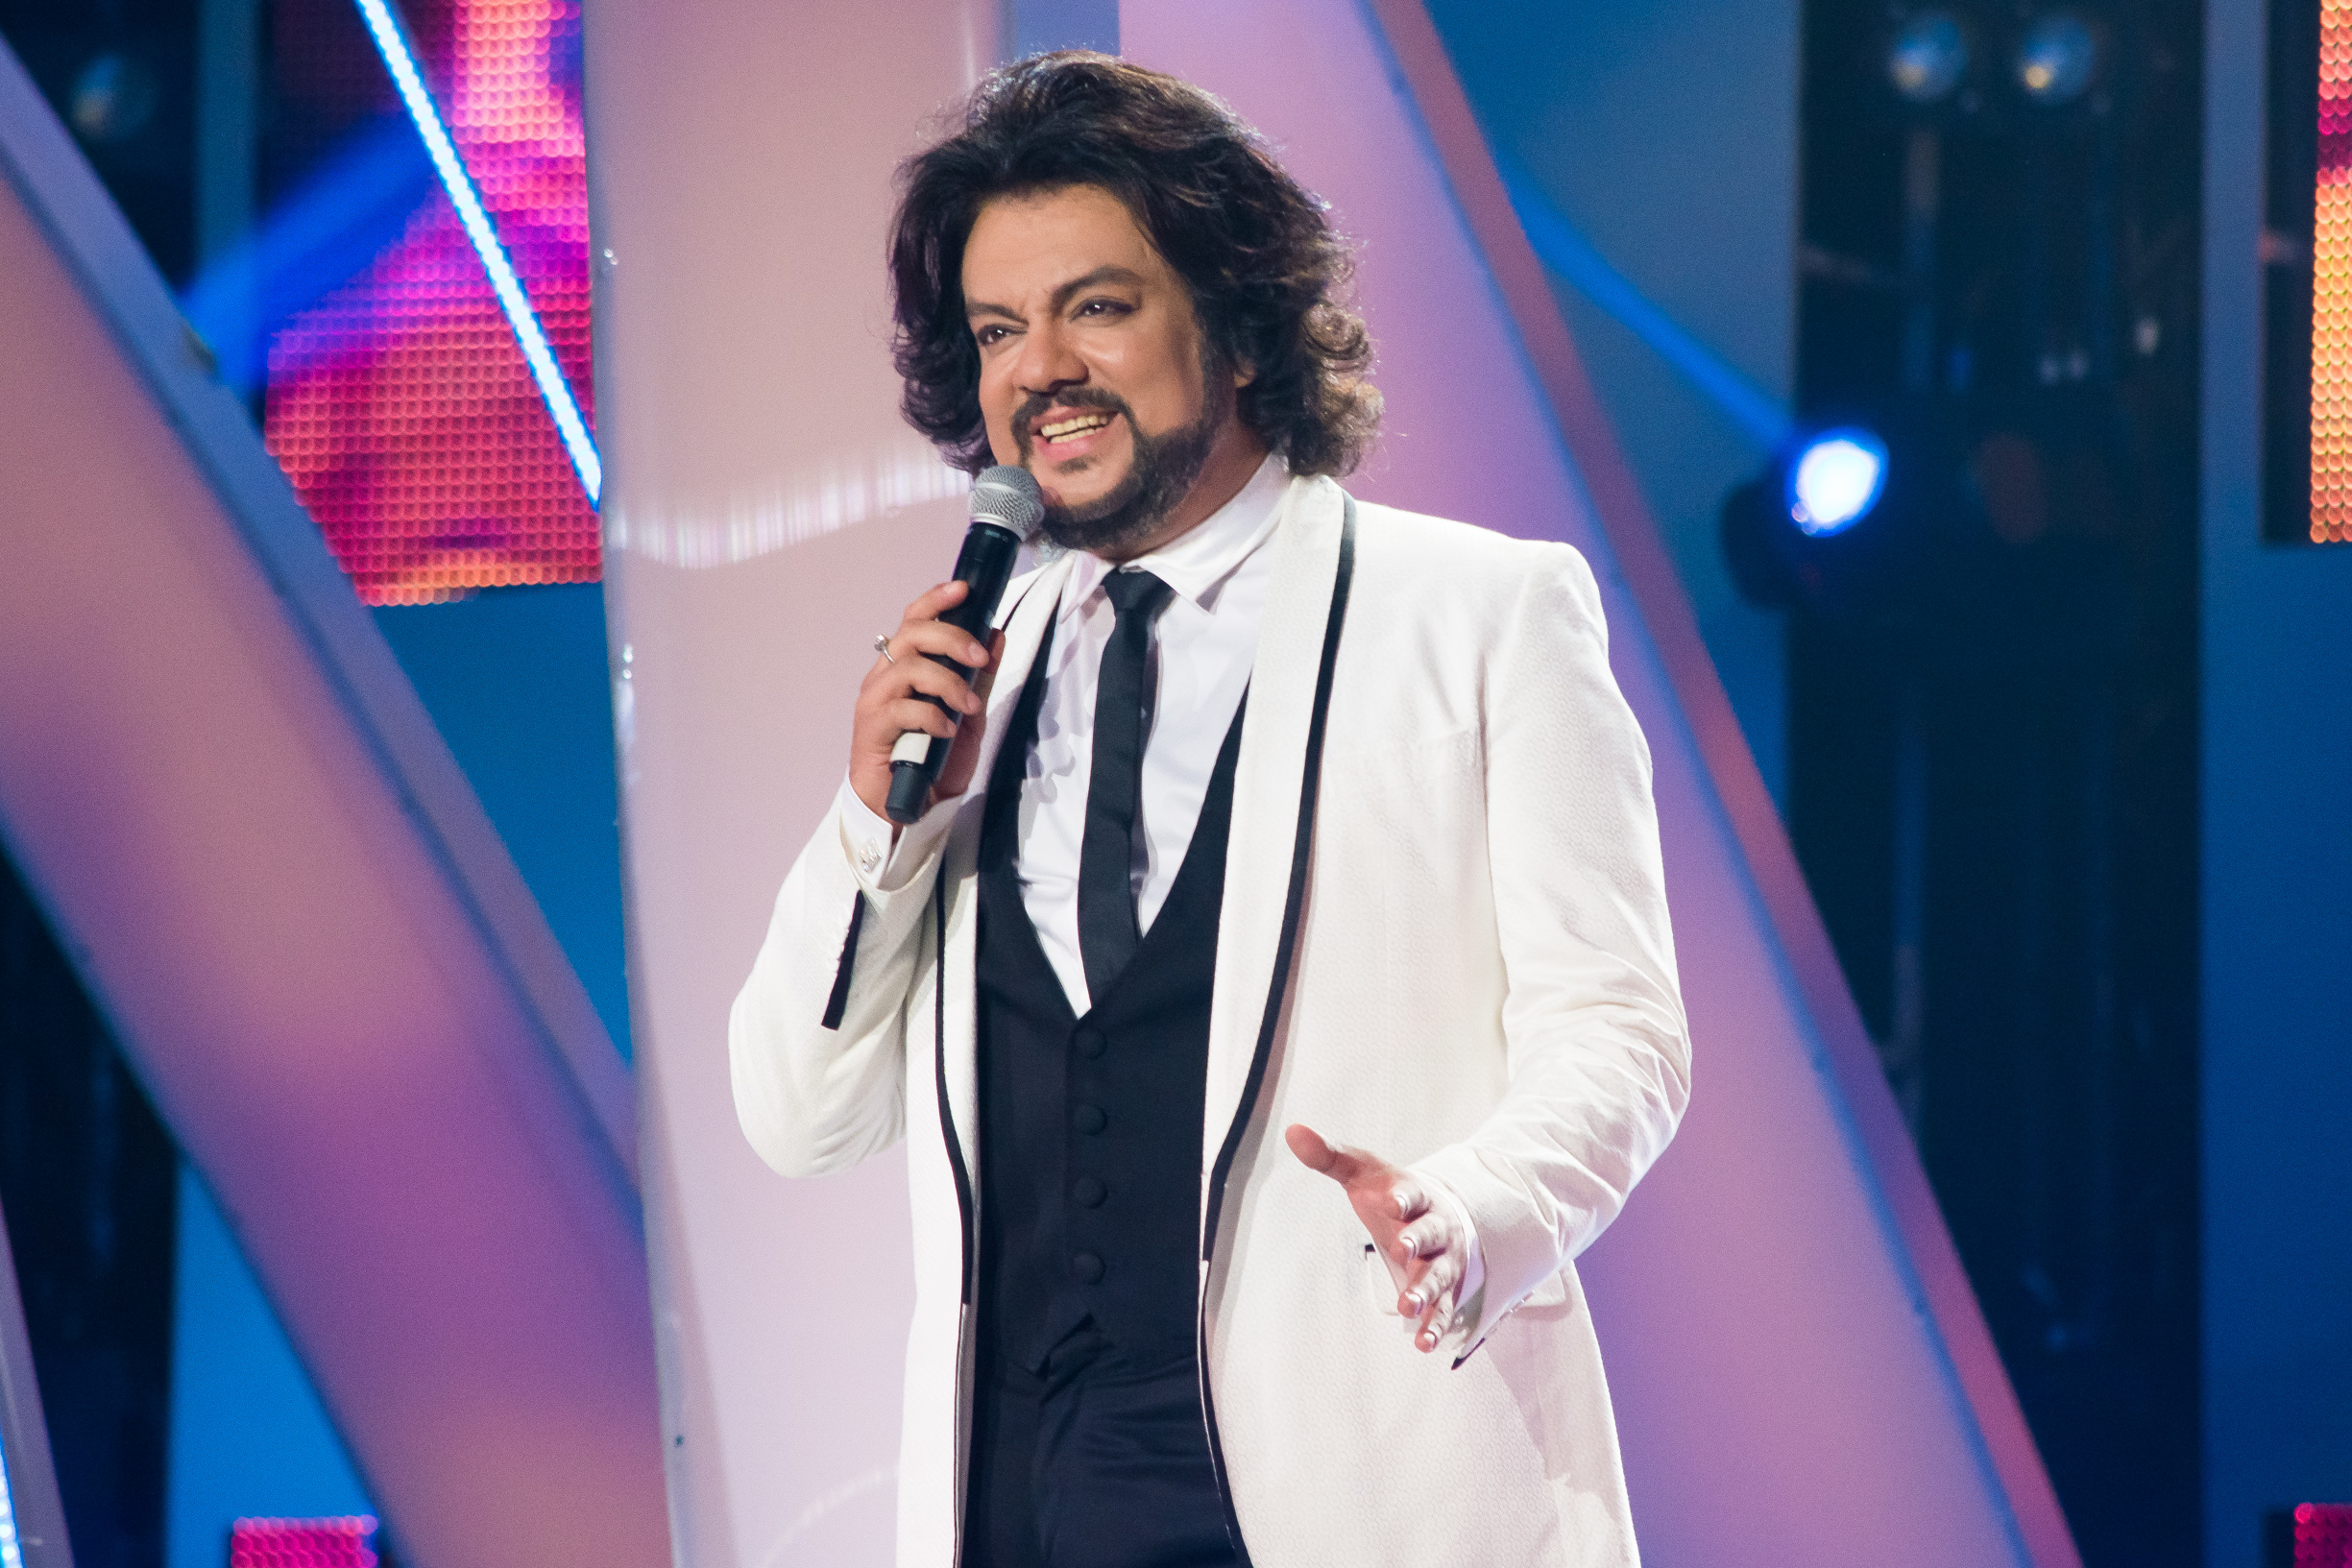 Serious scandal: Phillip Kirkorov stopped concealing jealousy and personal dislike for Svetlana Loboda